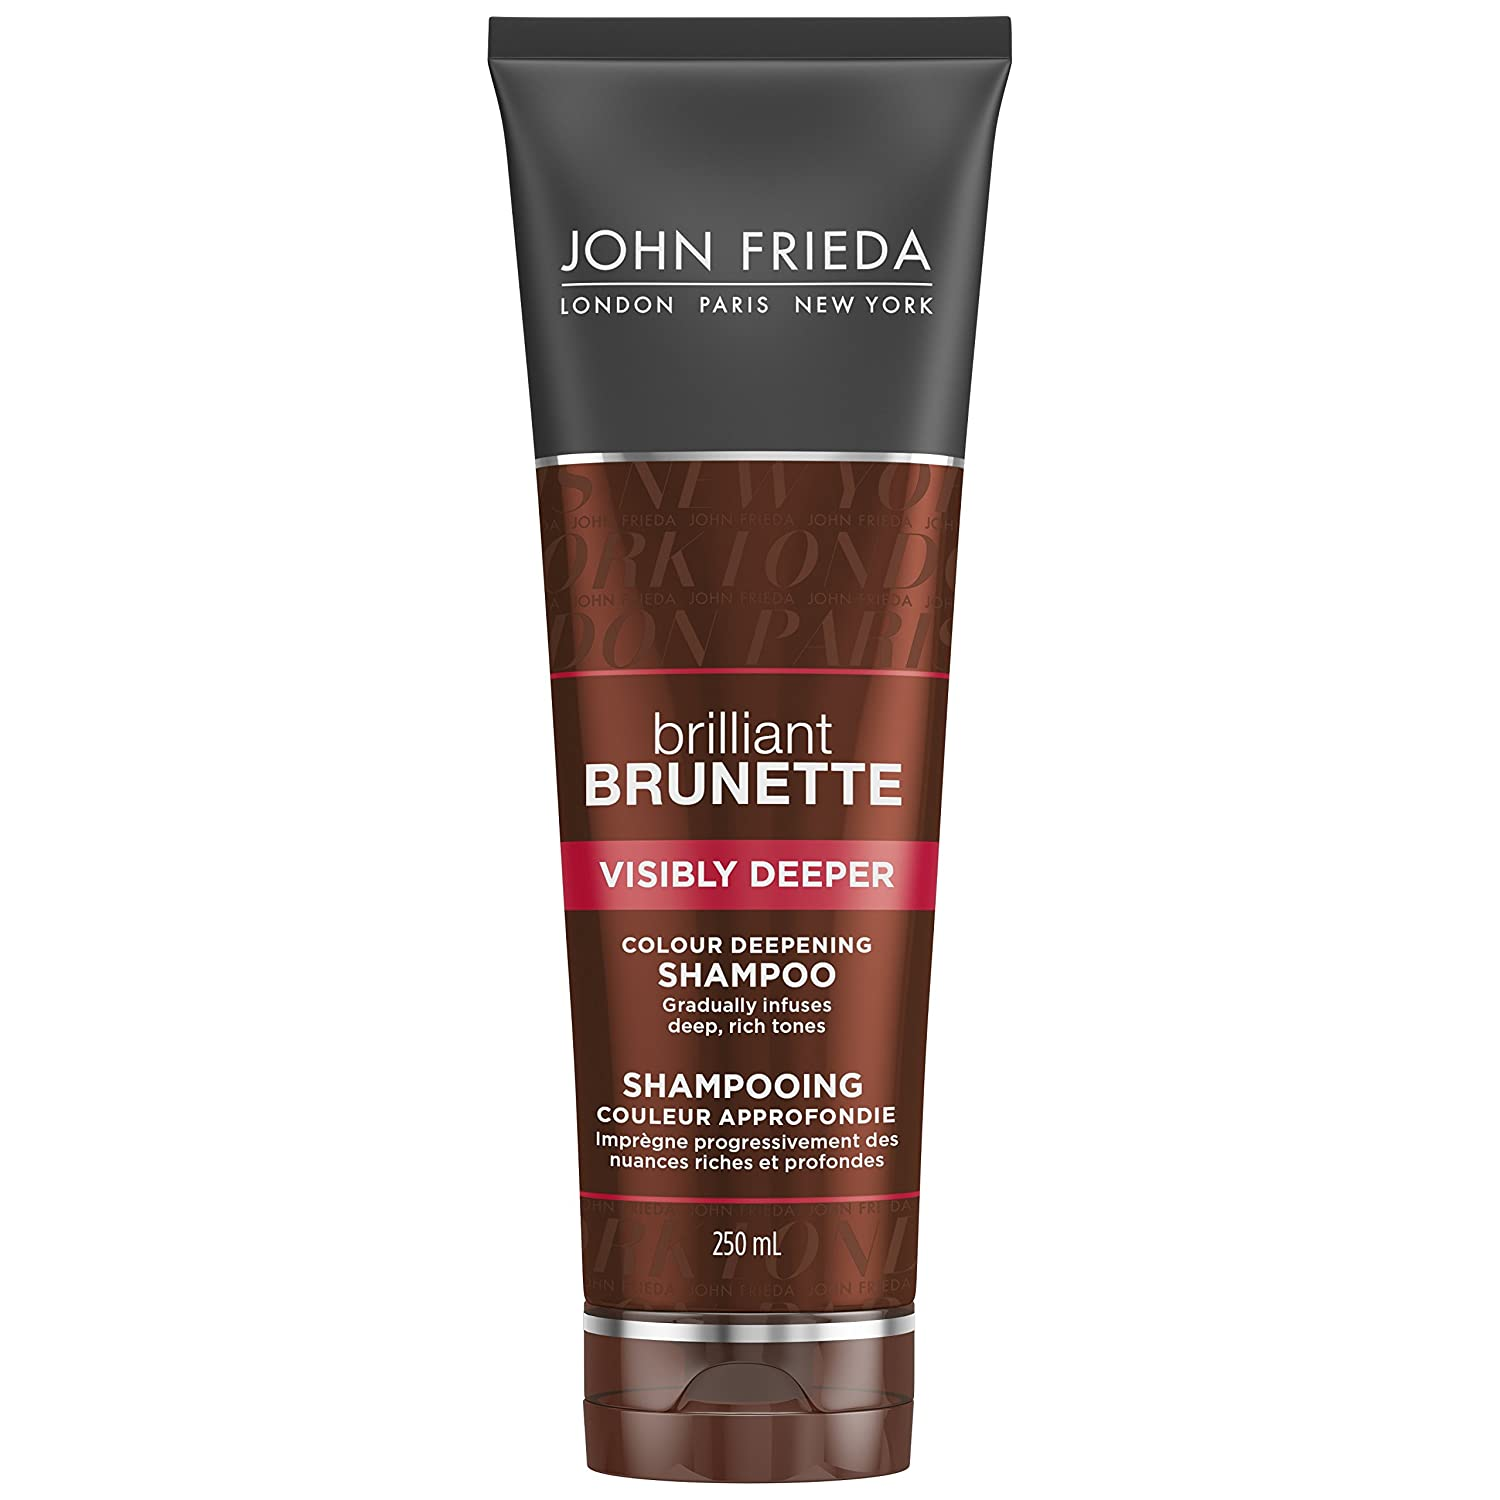 JOHN FRIEDA Brilliant Brunette Visibly Deeper Colour Deepening Shampoo, 250 ml Kao